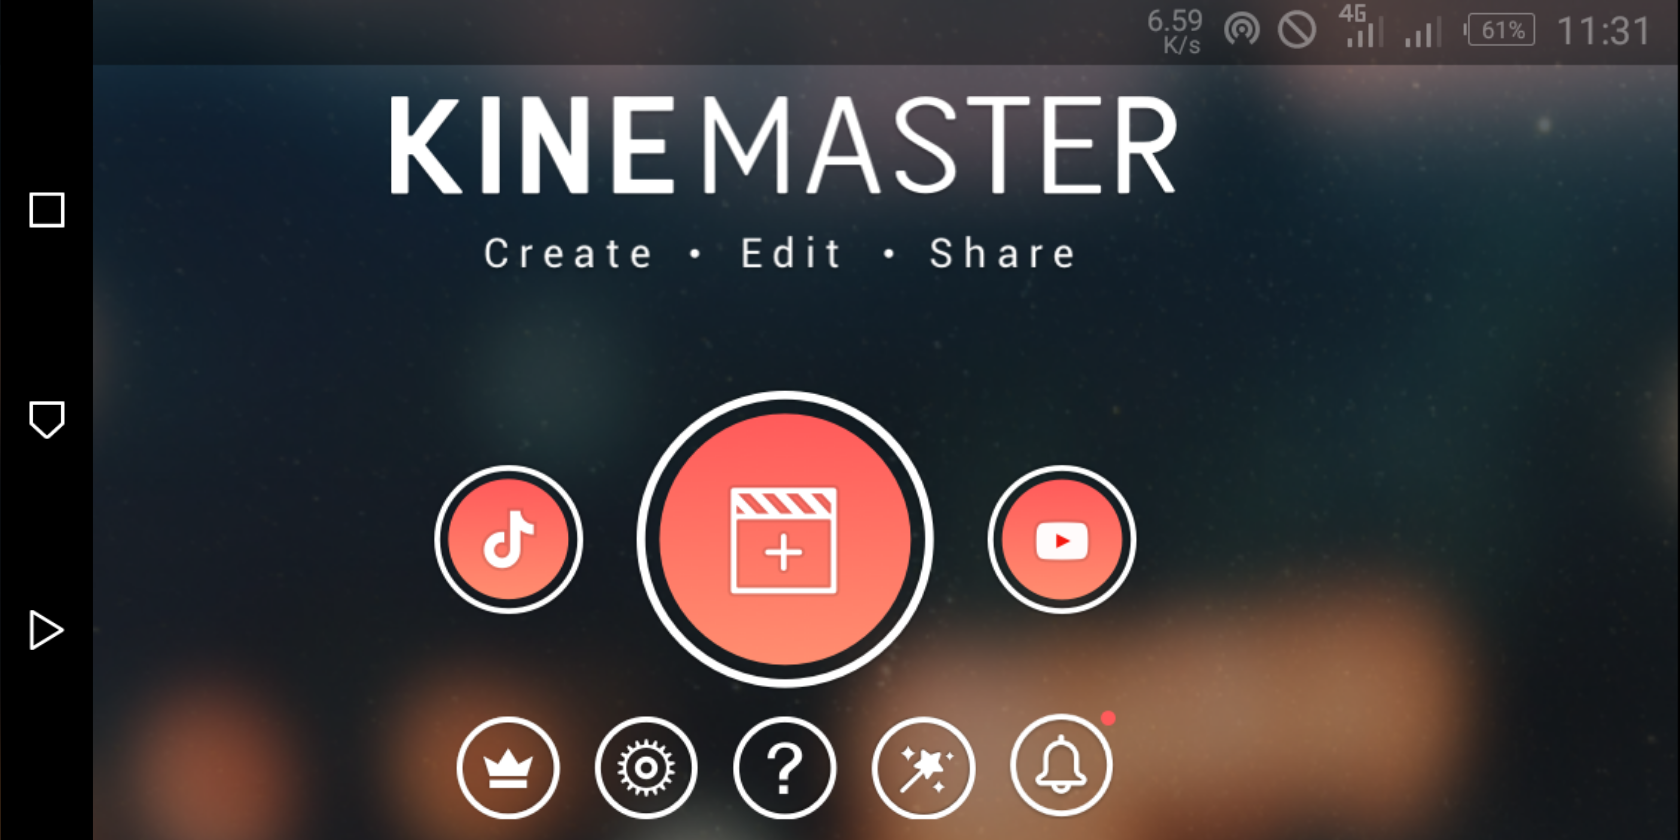 How to Edit Videos on Your Phone With KineMaster